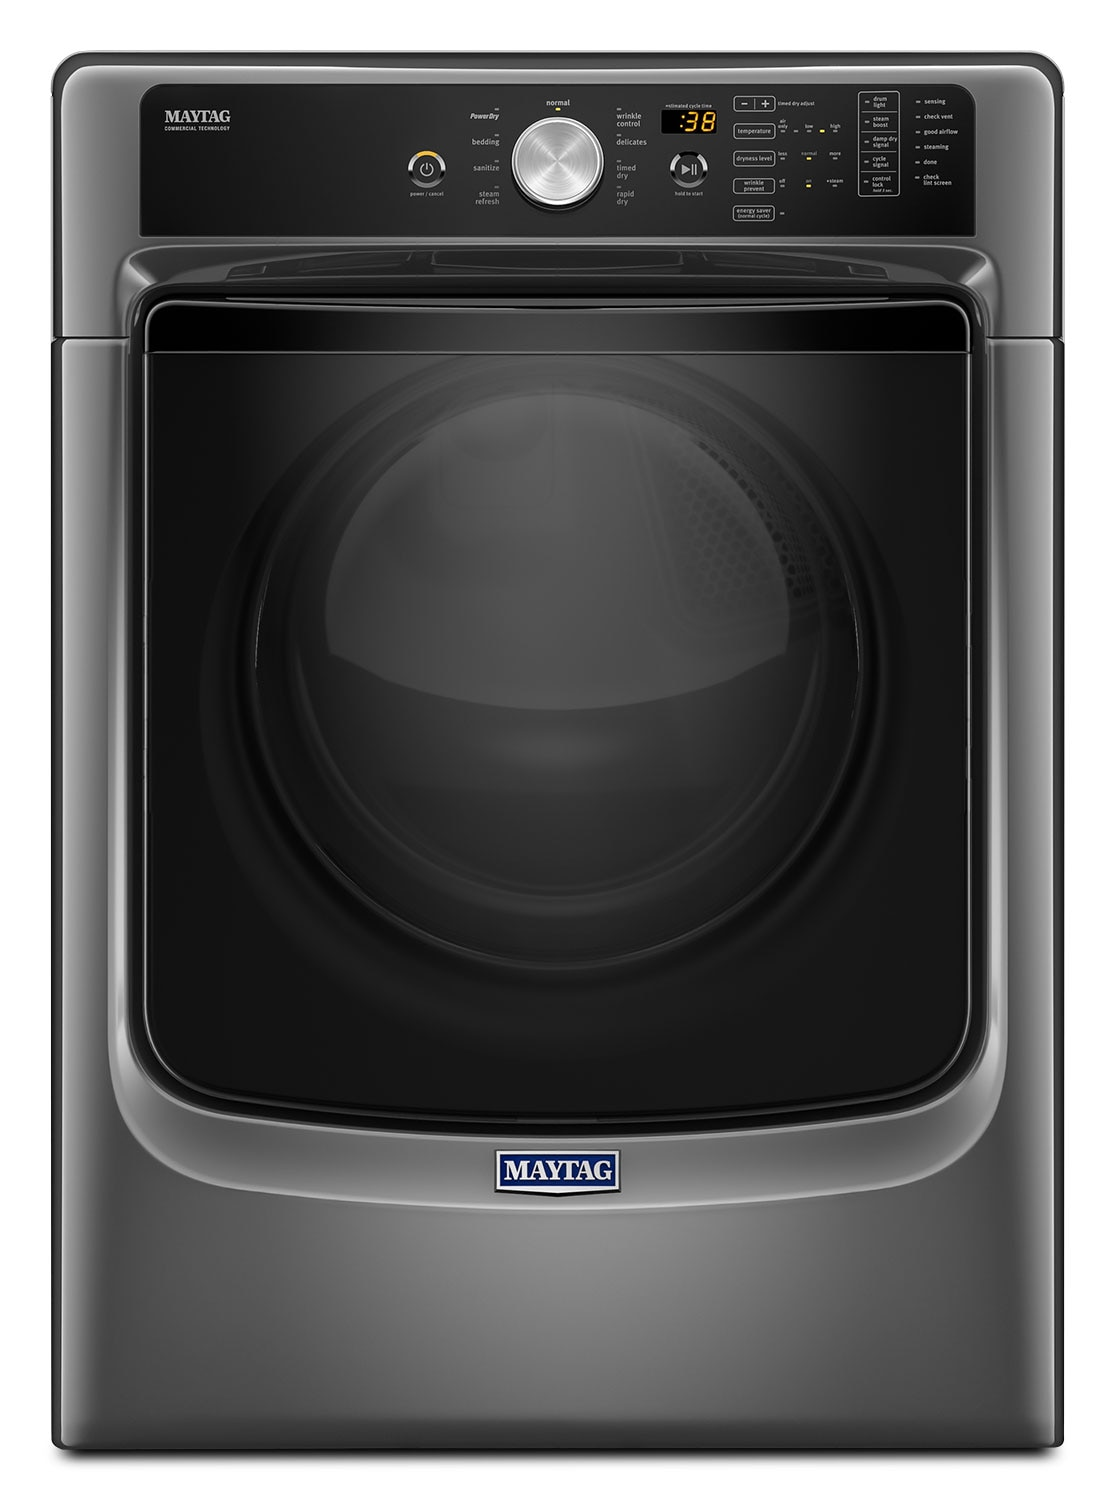 maytag 7.4 electric dryer reviews